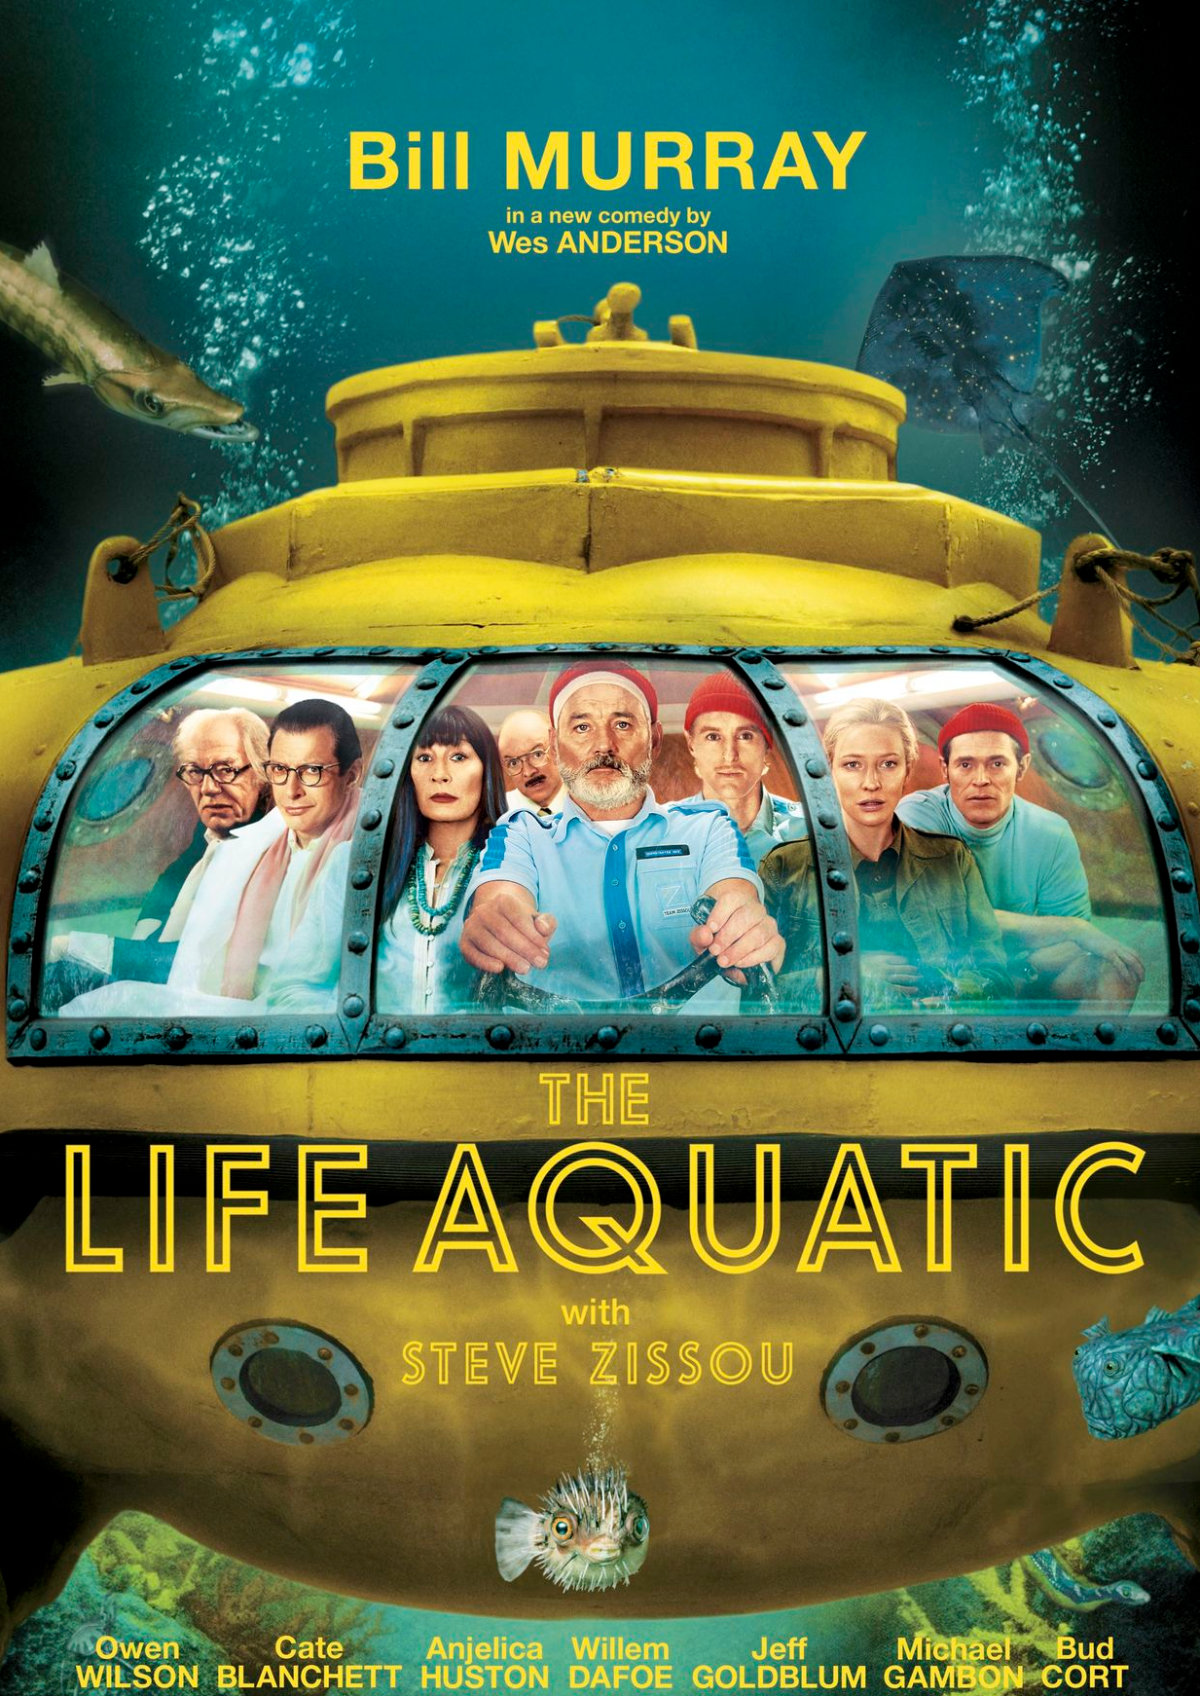 'The Life Aquatic with Steve Zissou' movie poster